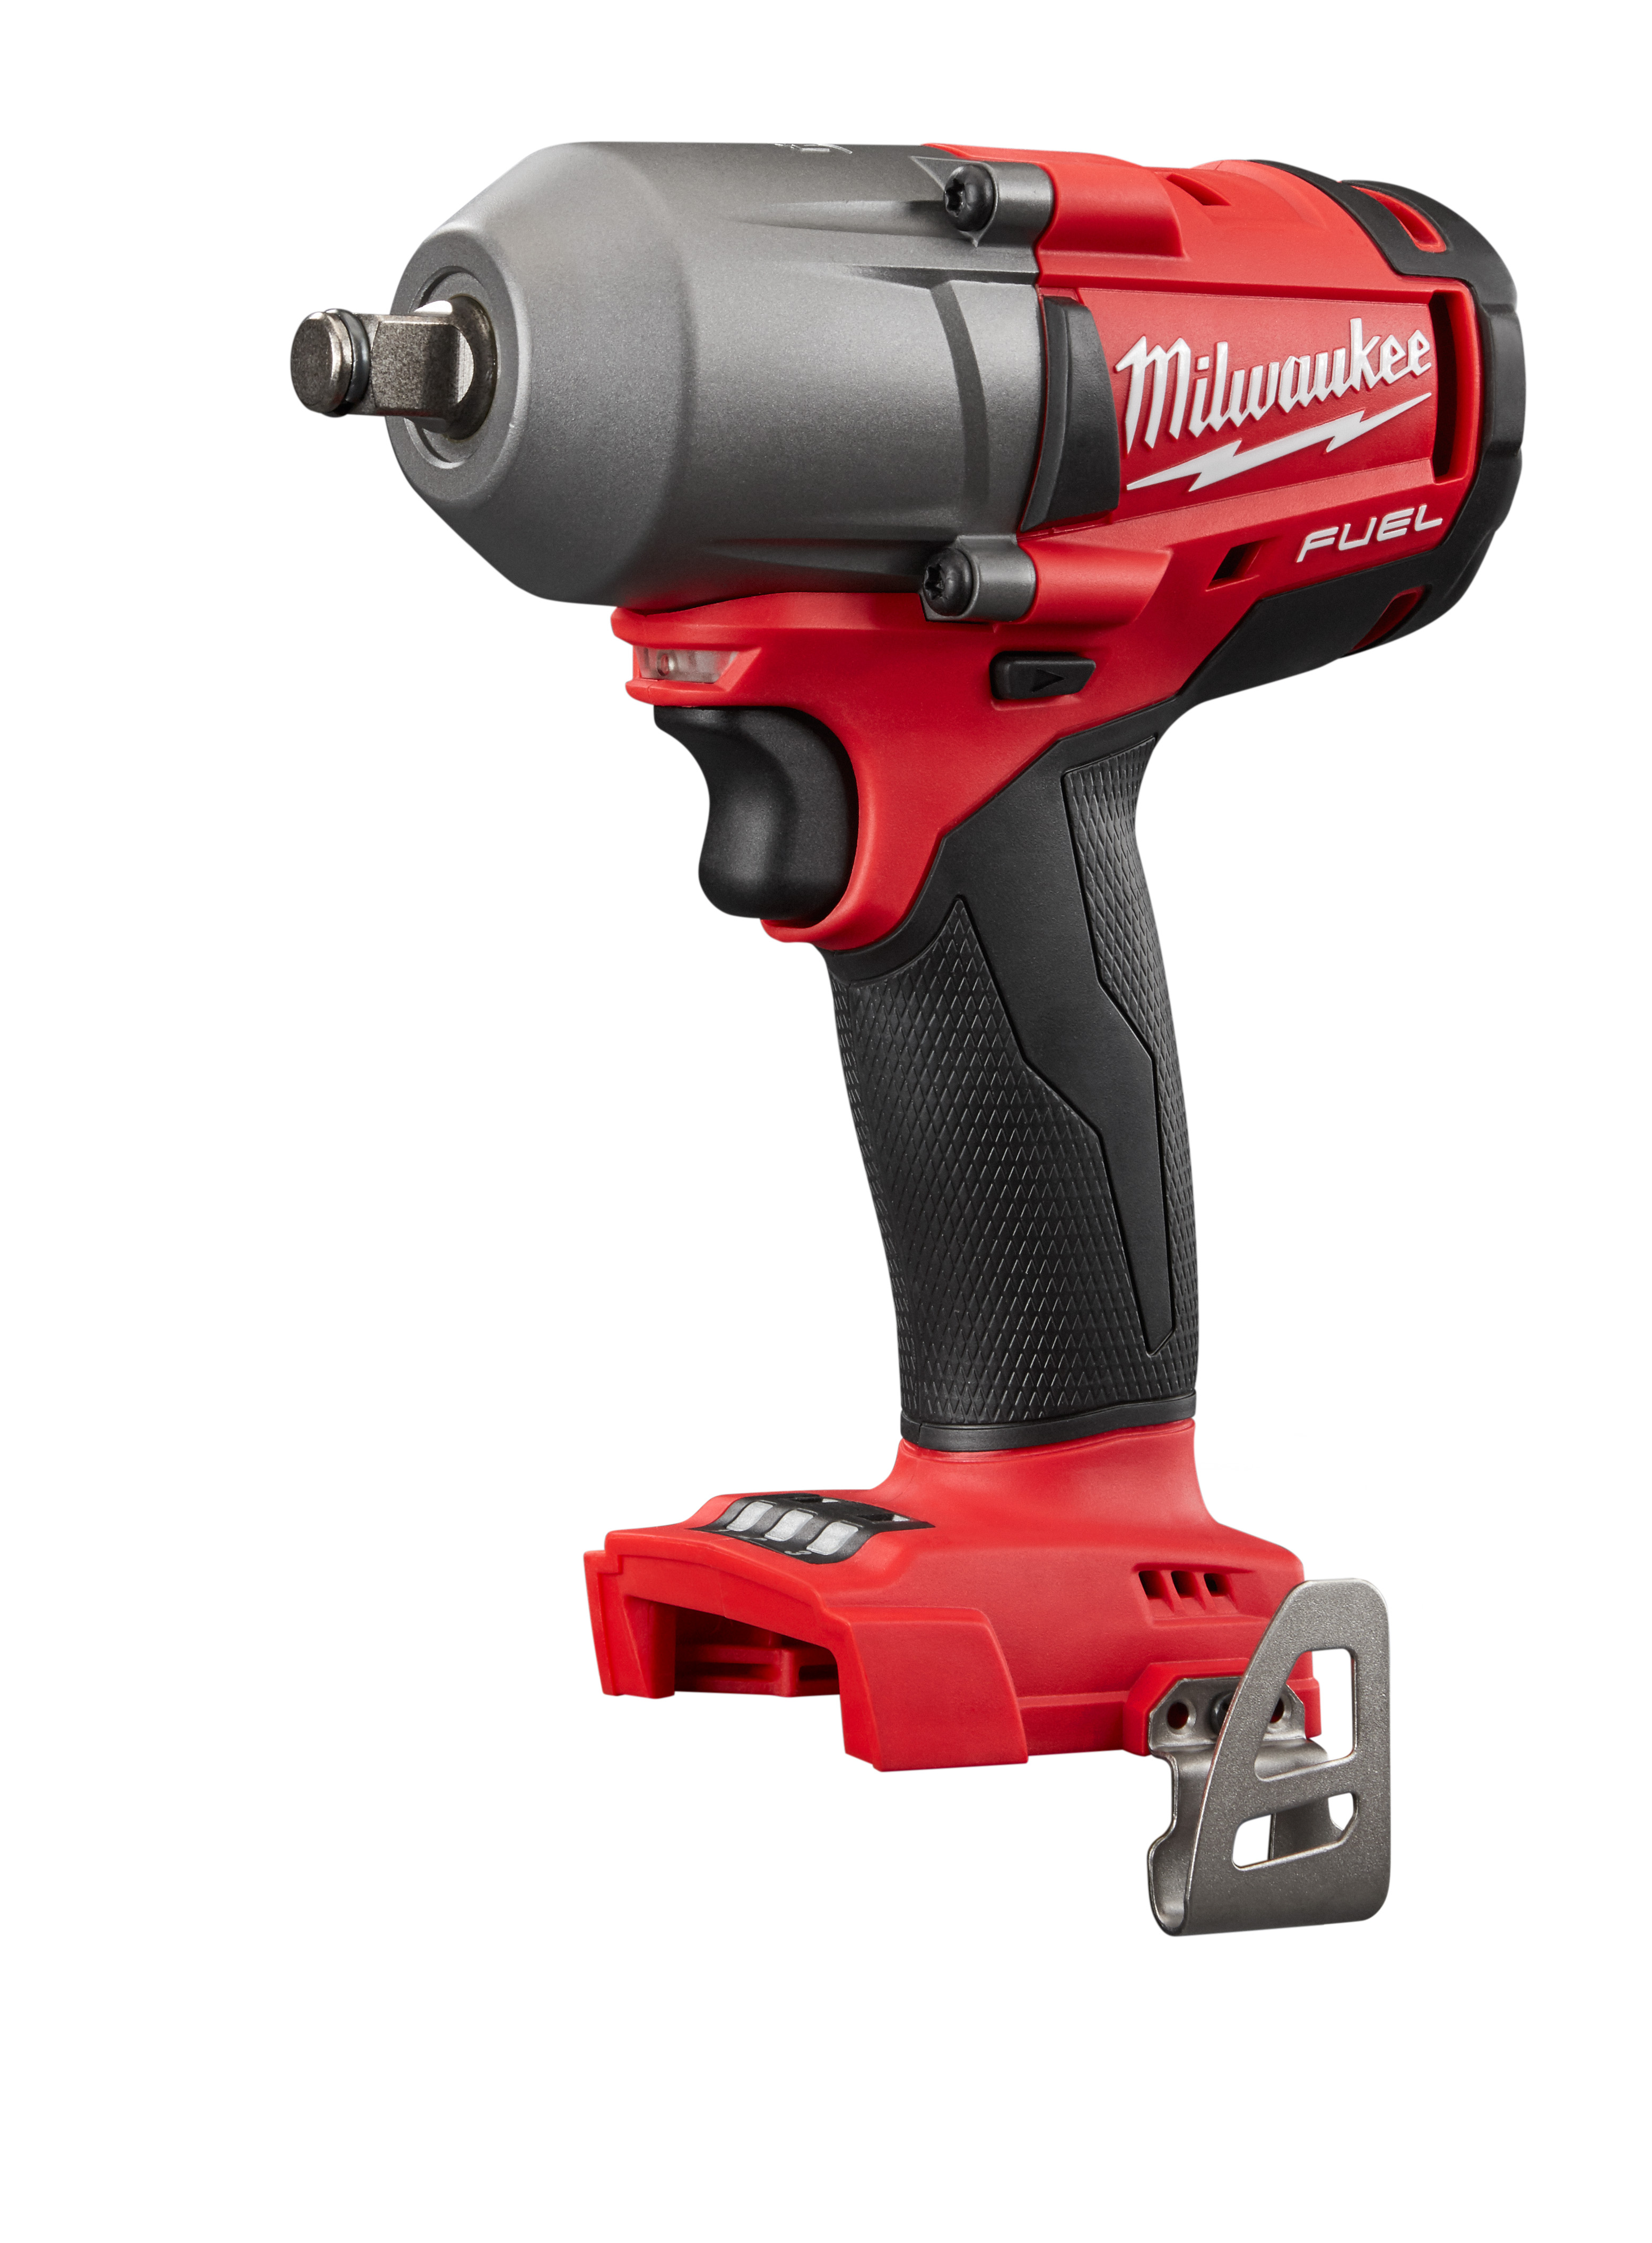 Milwaukee® M18™ FUEL™ 2861-20 Mid Torque Cordless Impact Wrench With Friction Ring, 1/2 in Straight/Square Drive, 3000 bpm, 600 ft-lb Torque, 18 VDC, 6.77 in OAL